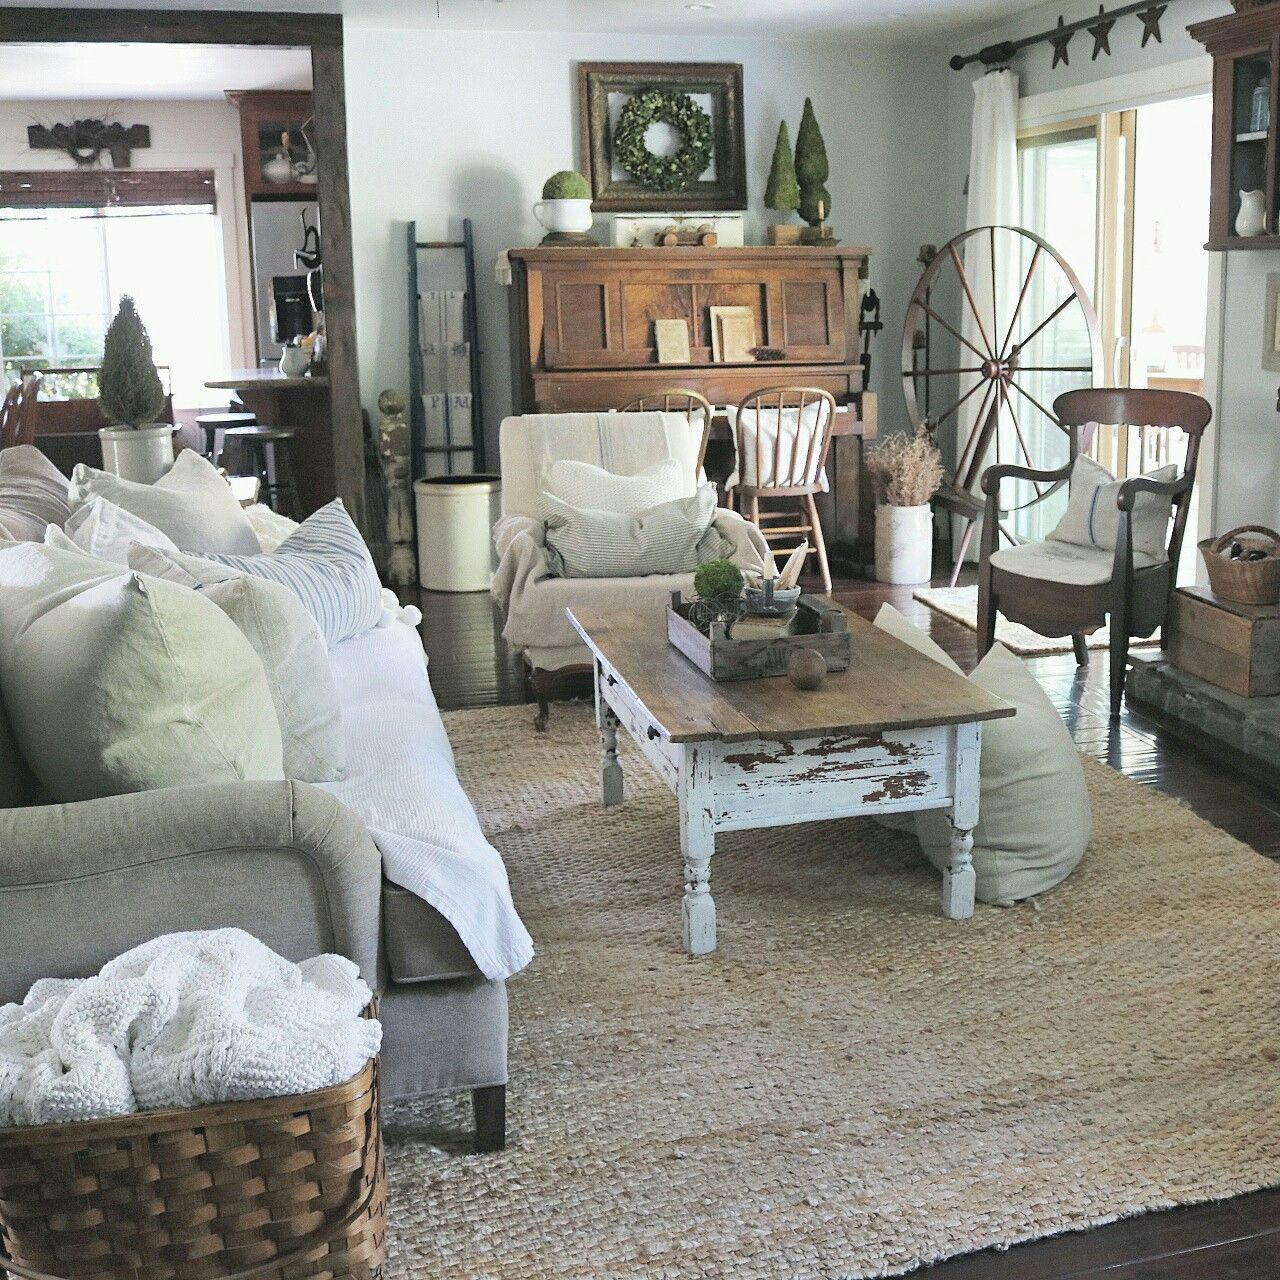 Farmhouse Living Room at home on SweetCreek Farmhouse